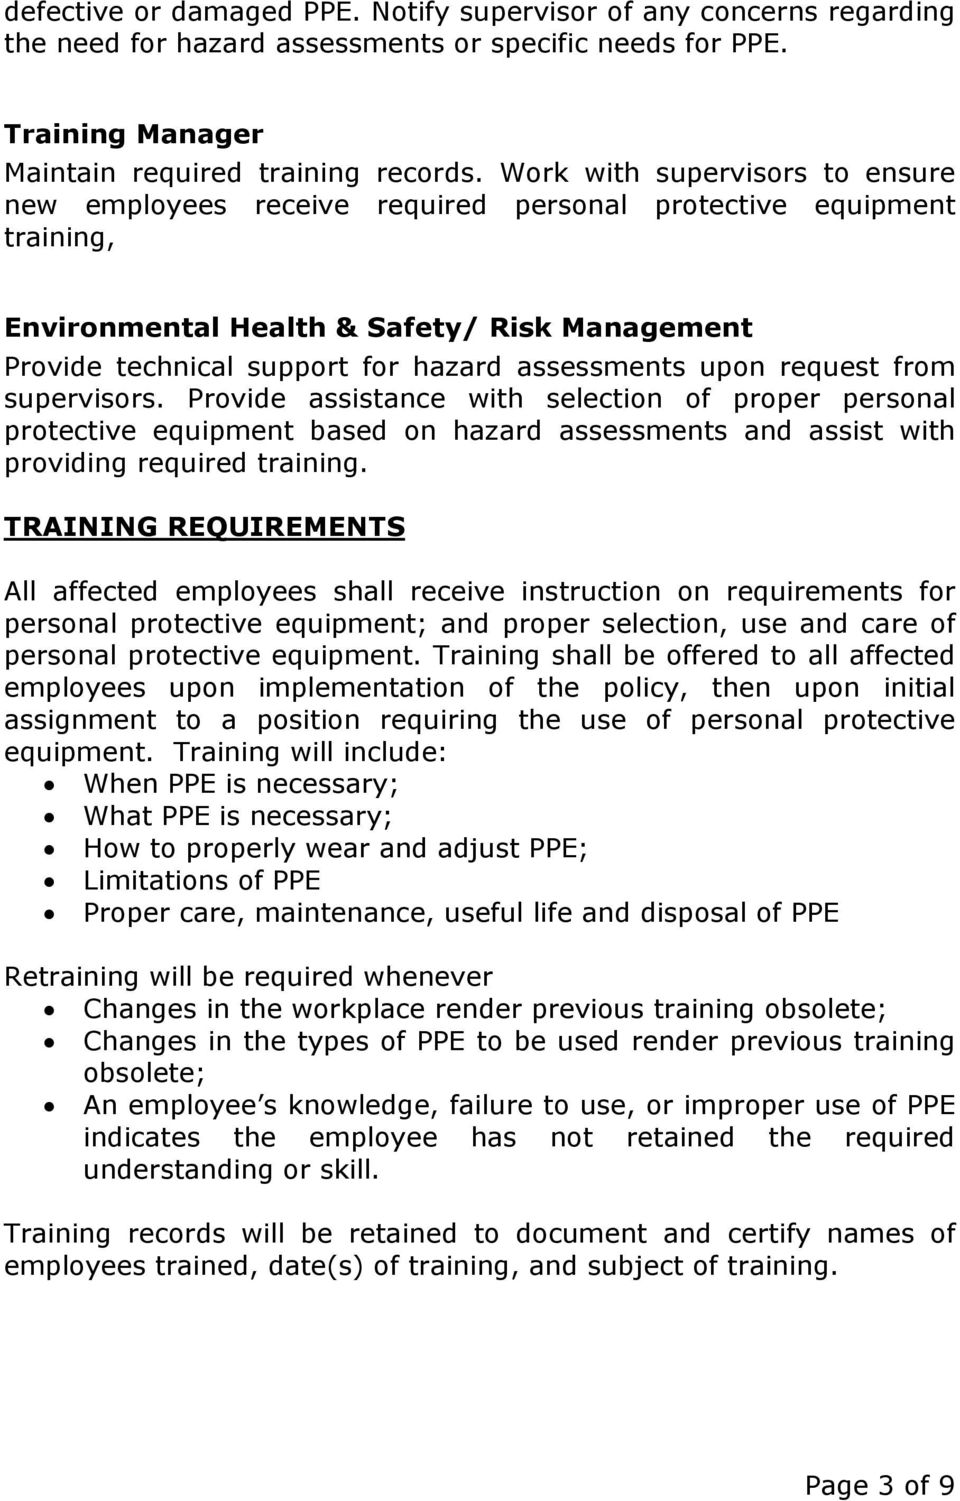 upon request from supervisors. Provide assistance with selection of proper personal protective equipment based on hazard assessments and assist with providing required training.